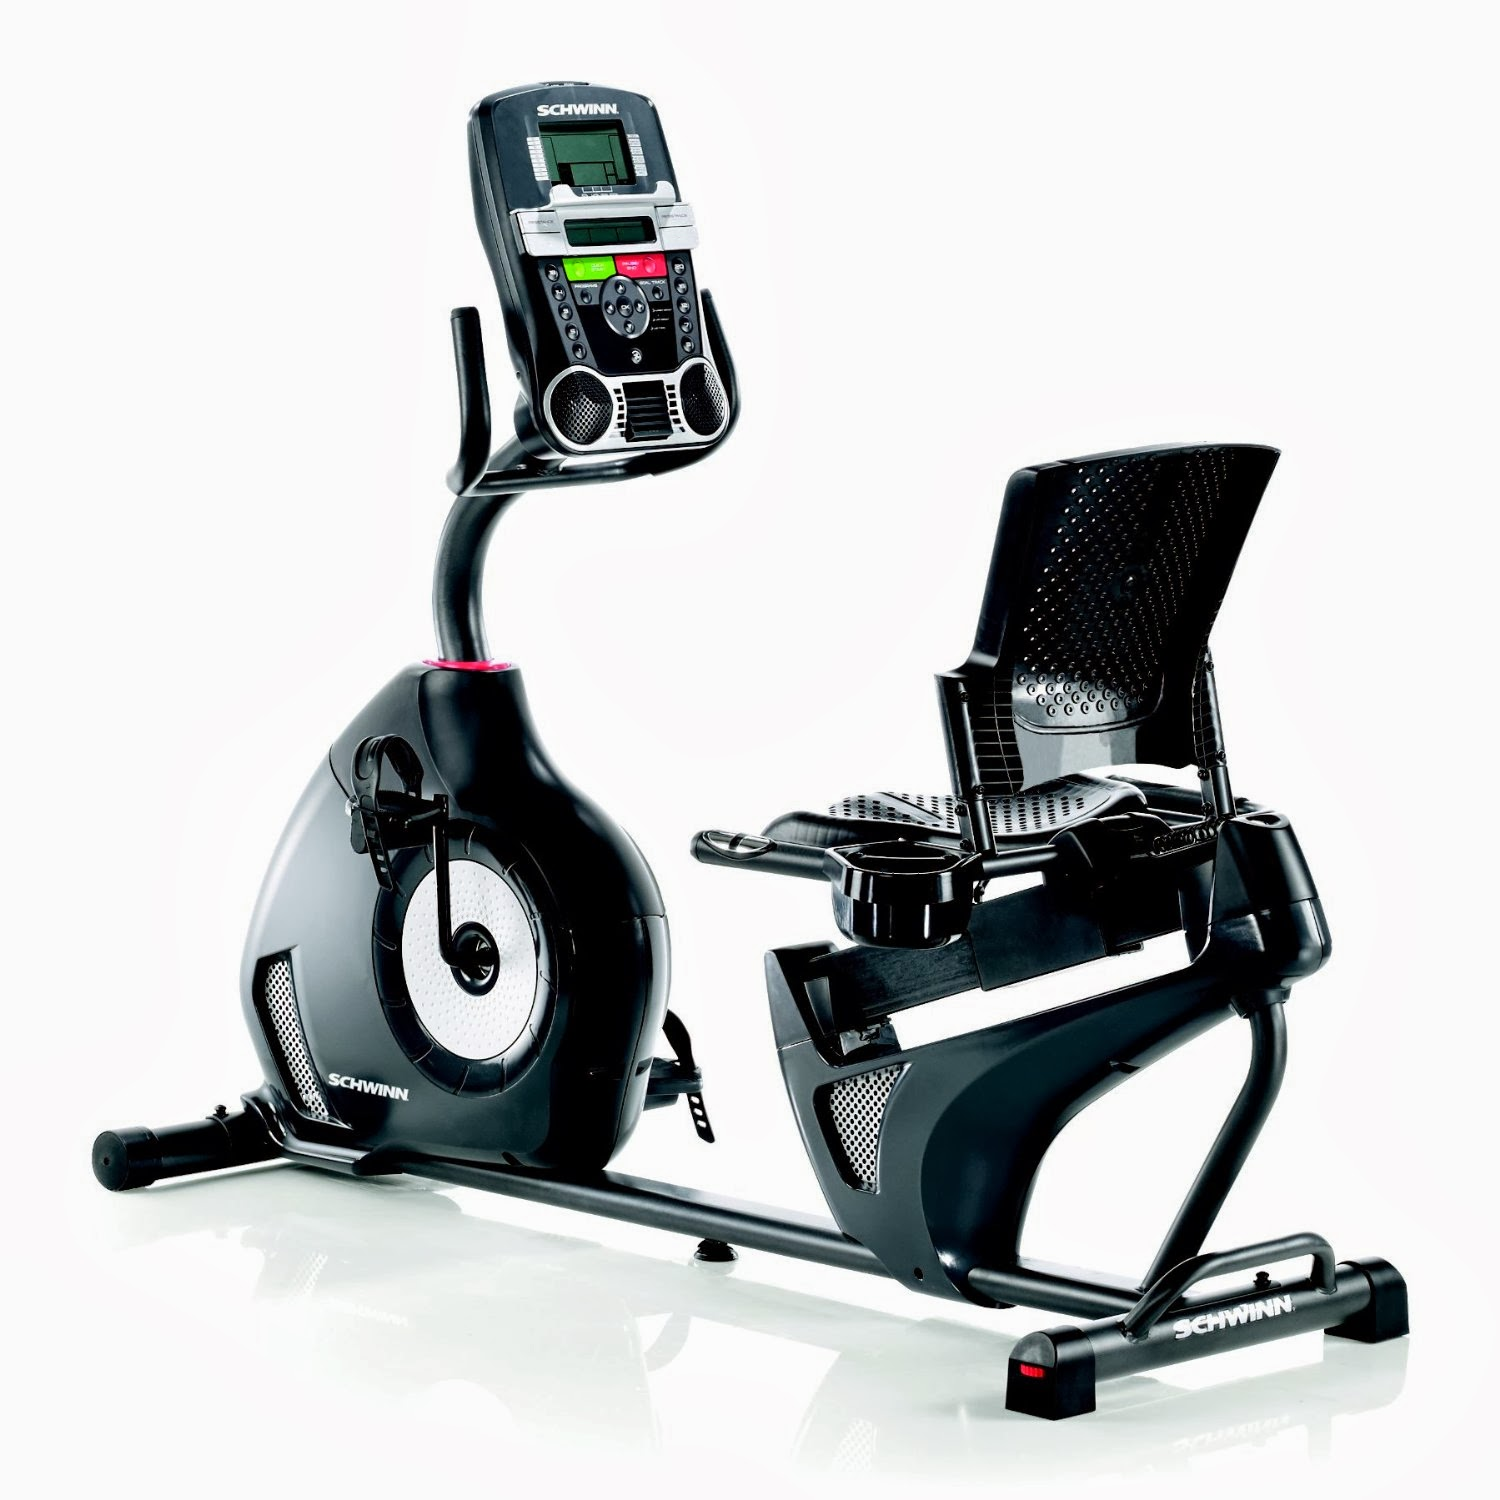 Schwinn 230 Recumbent Bike, picture, review features & specifications, compare with Schwinn 270